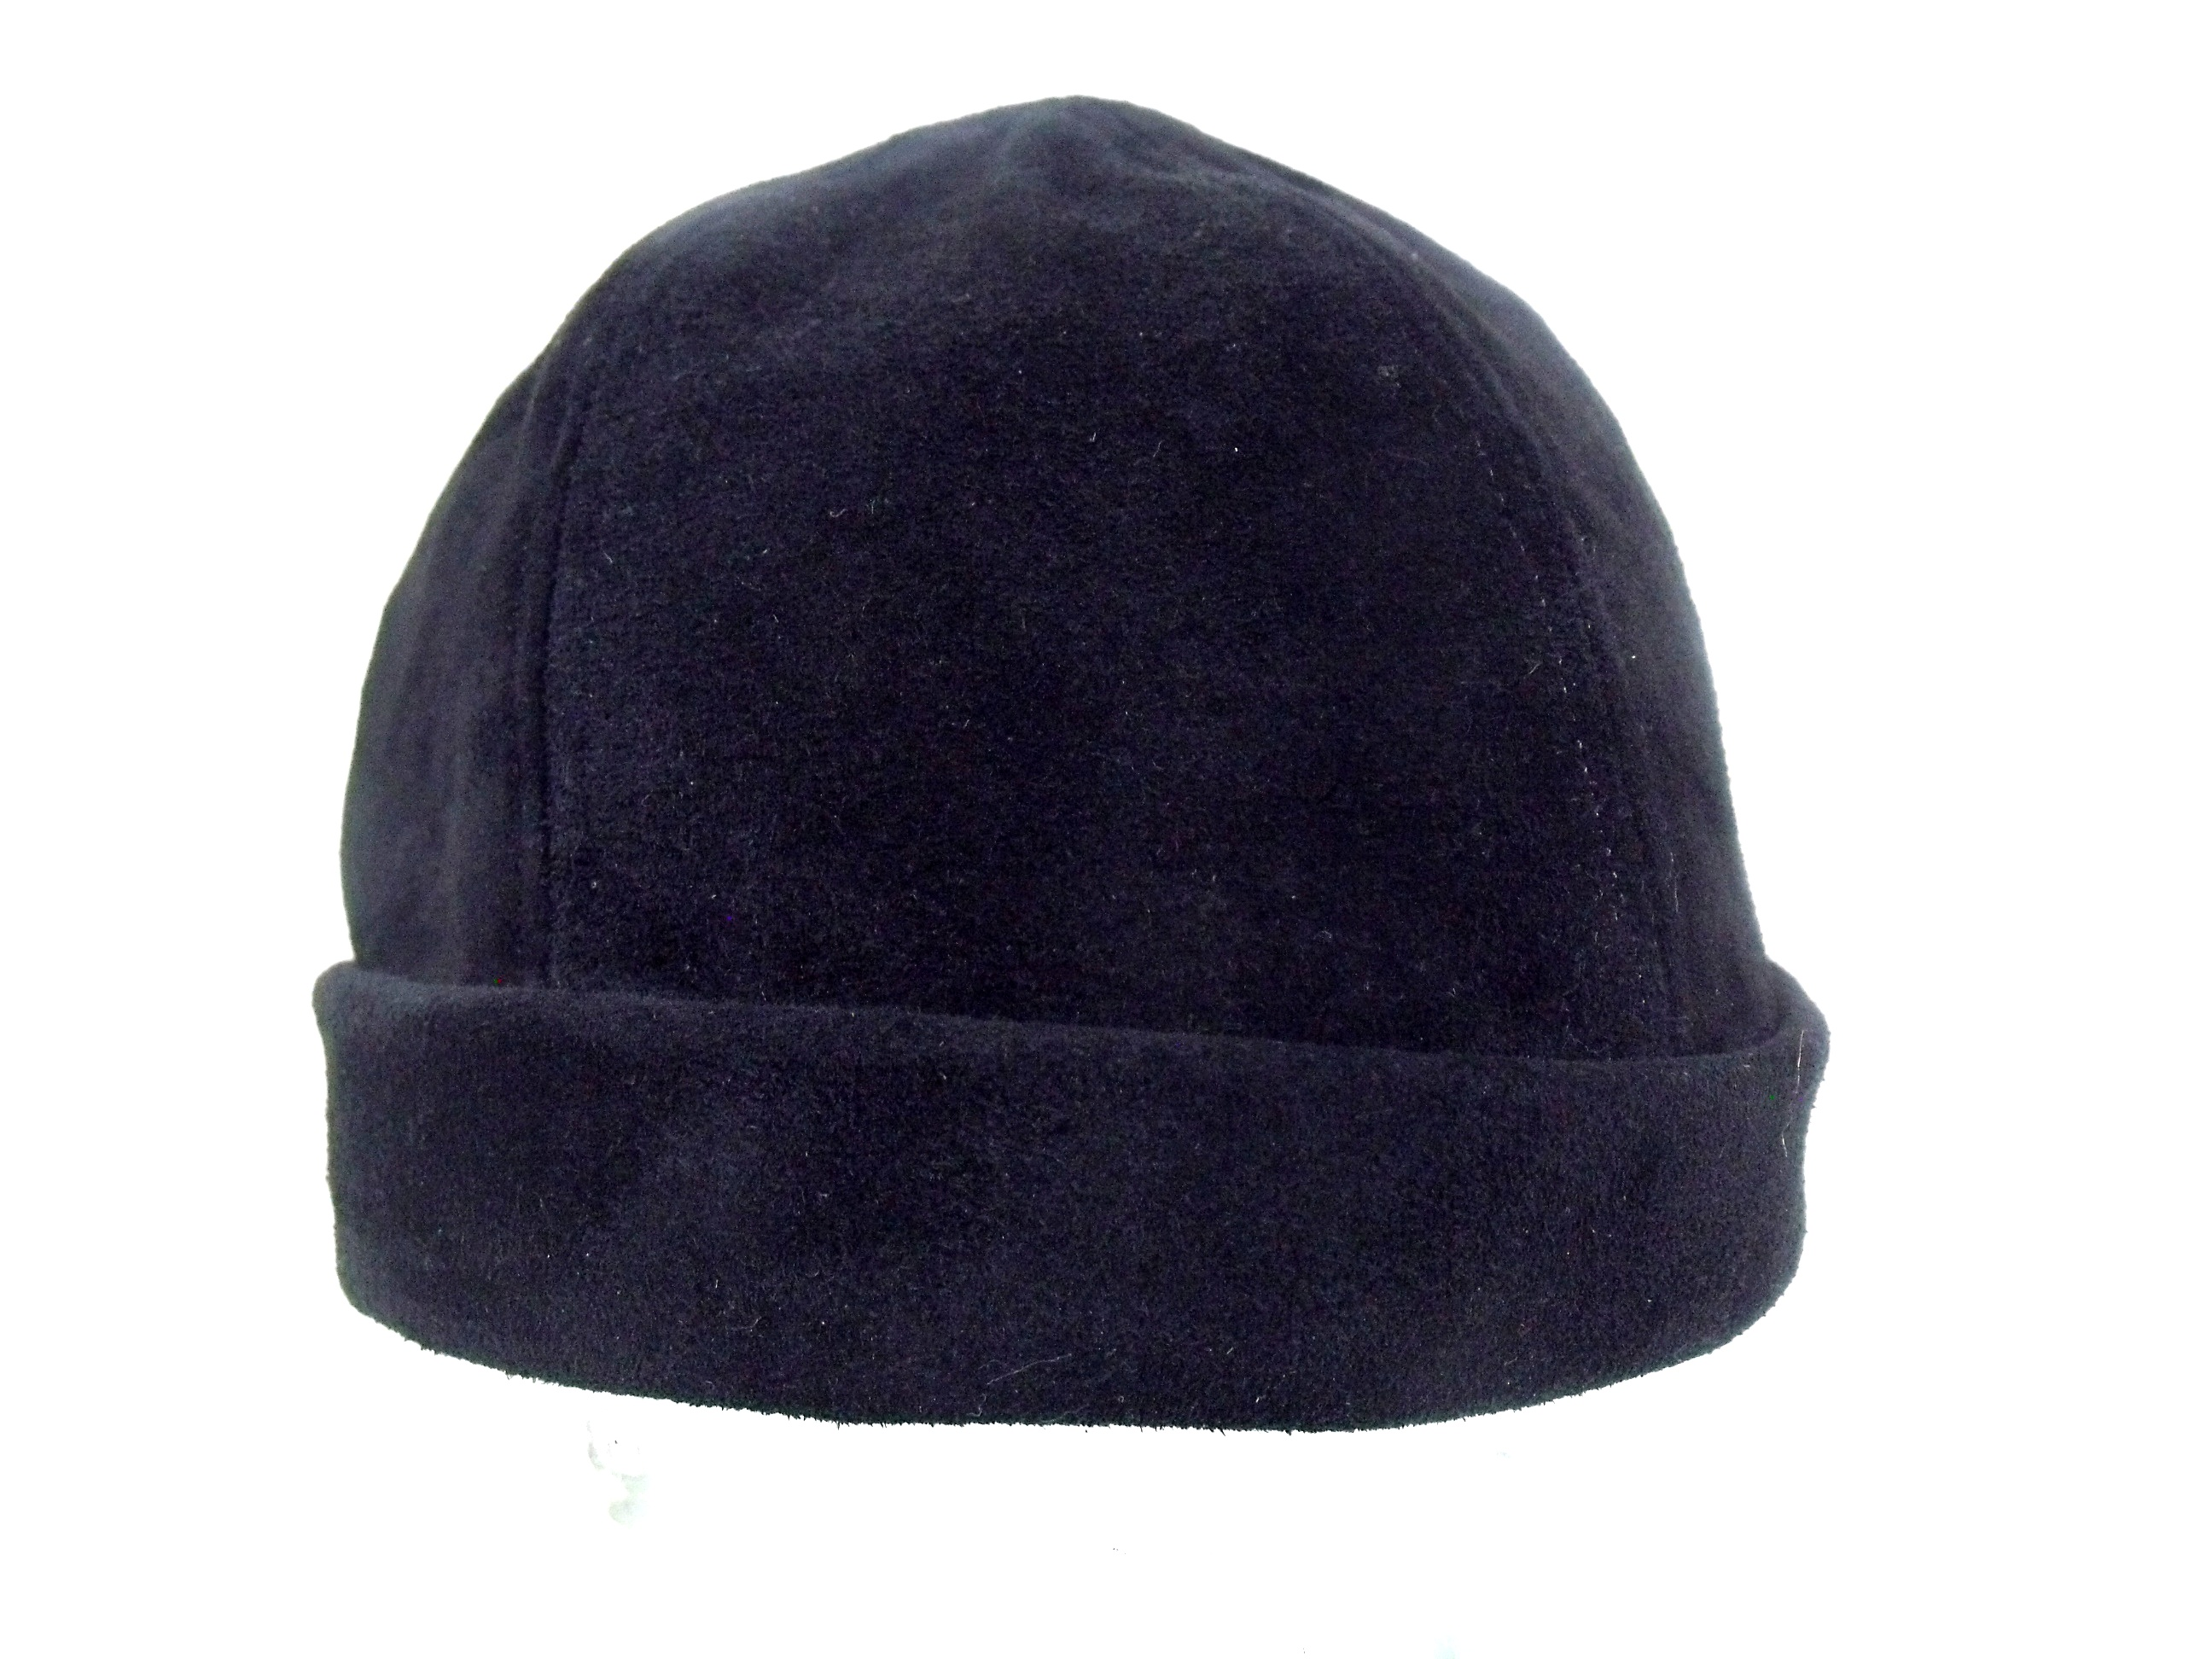 6535e4a6 All Leather I Robot Style Beanie